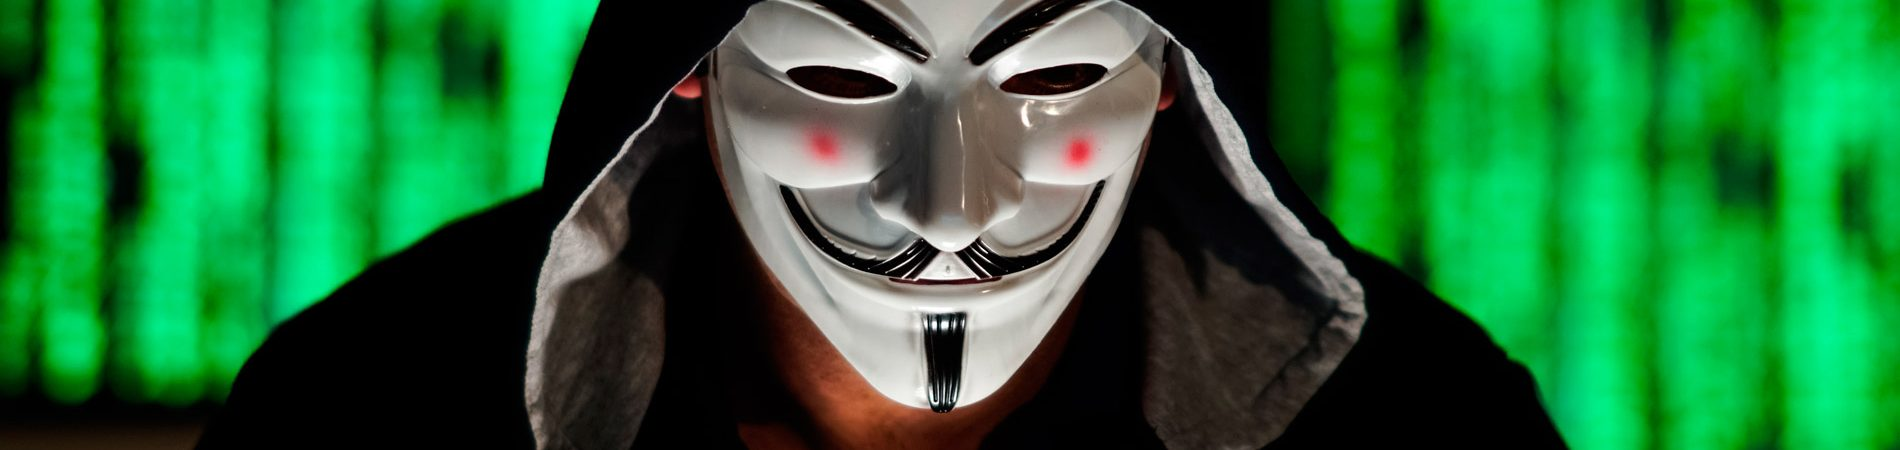 hacker with V for Vendetta mask in front of computer